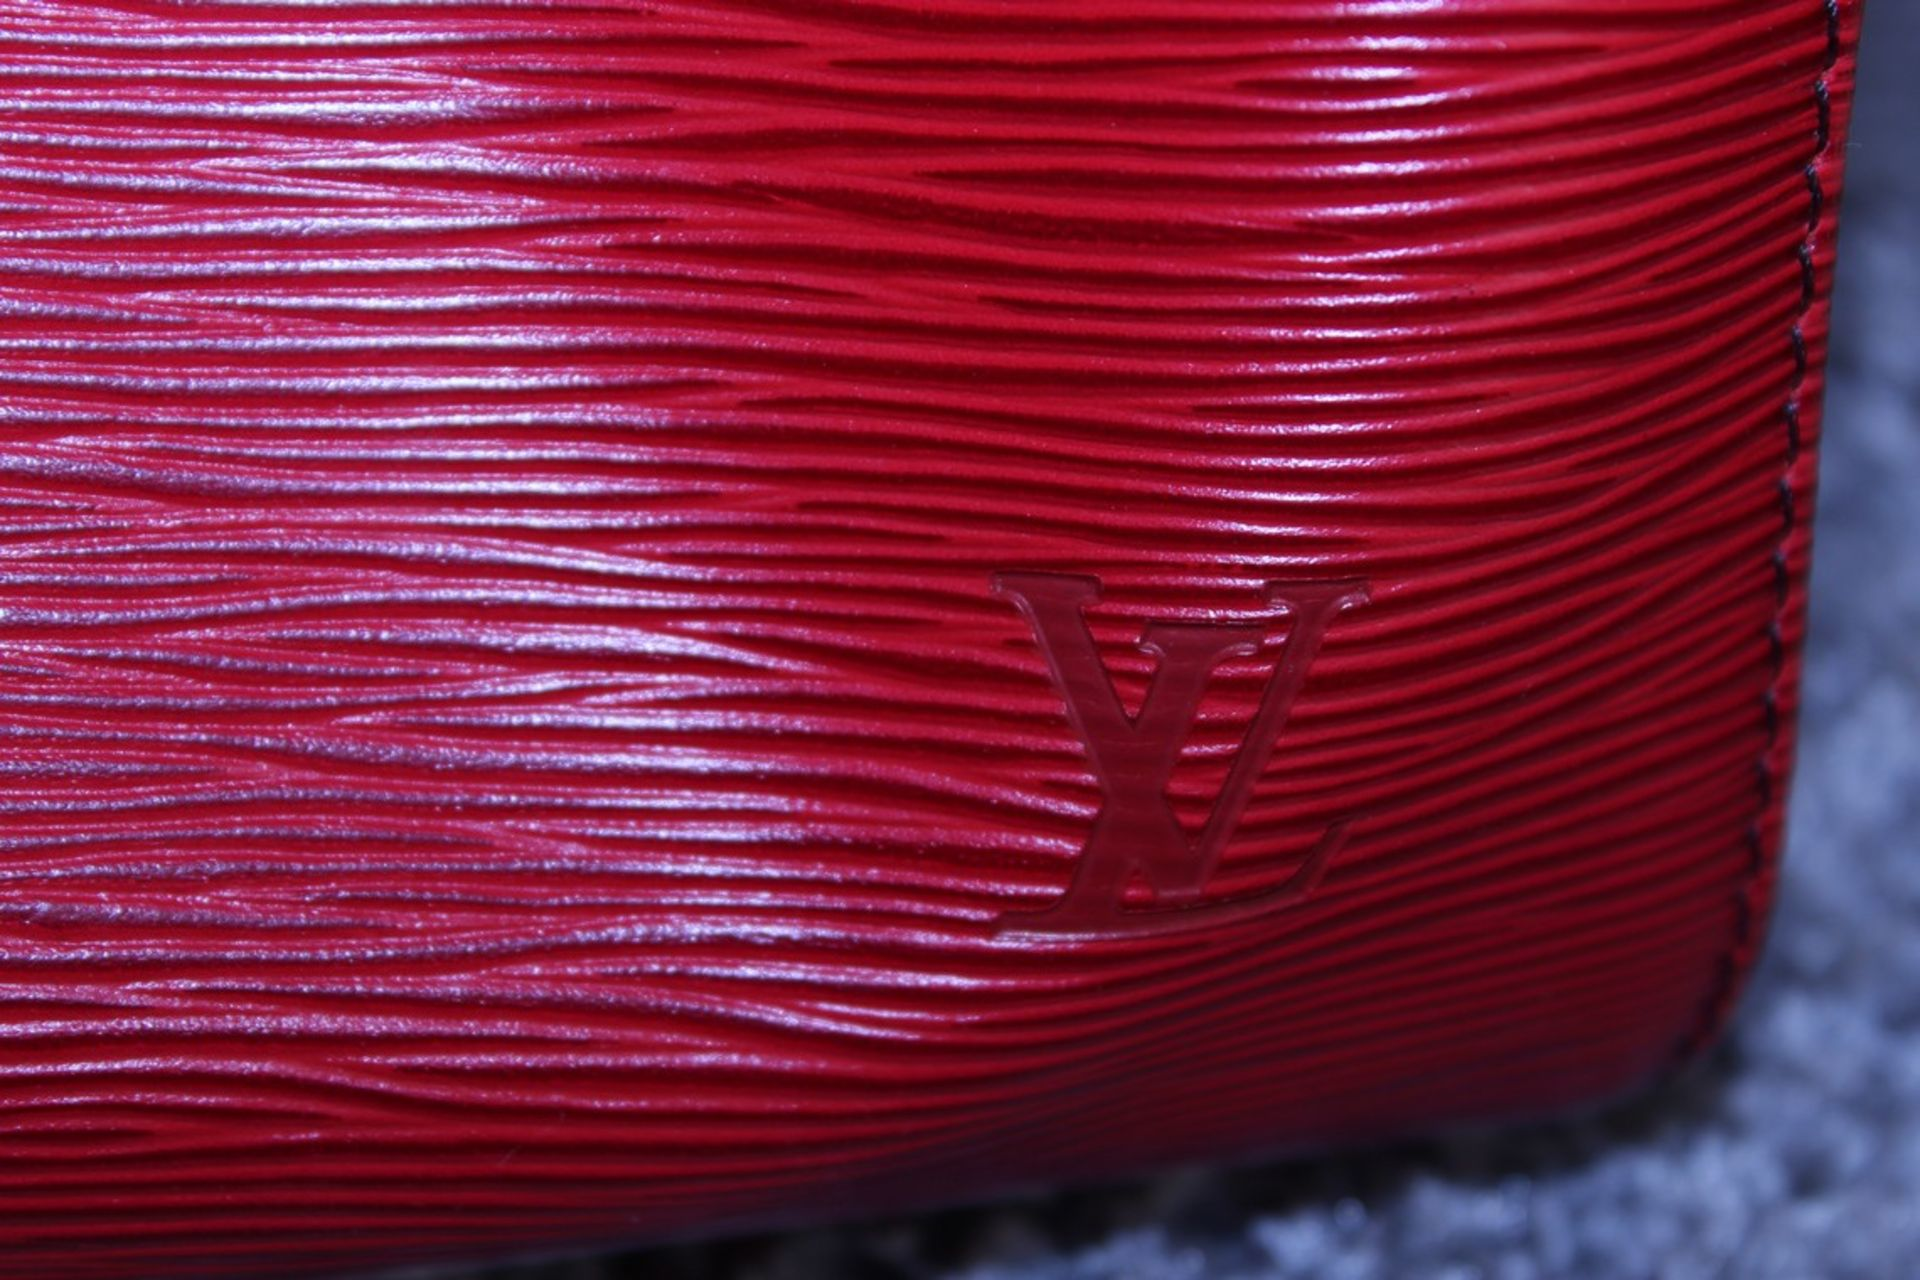 RRP £1,400 Louis Vuitton Keepall 45 Travel Bag, Red Calf Red Epi Leather, 48X28X20Cm, (Production - Image 3 of 3